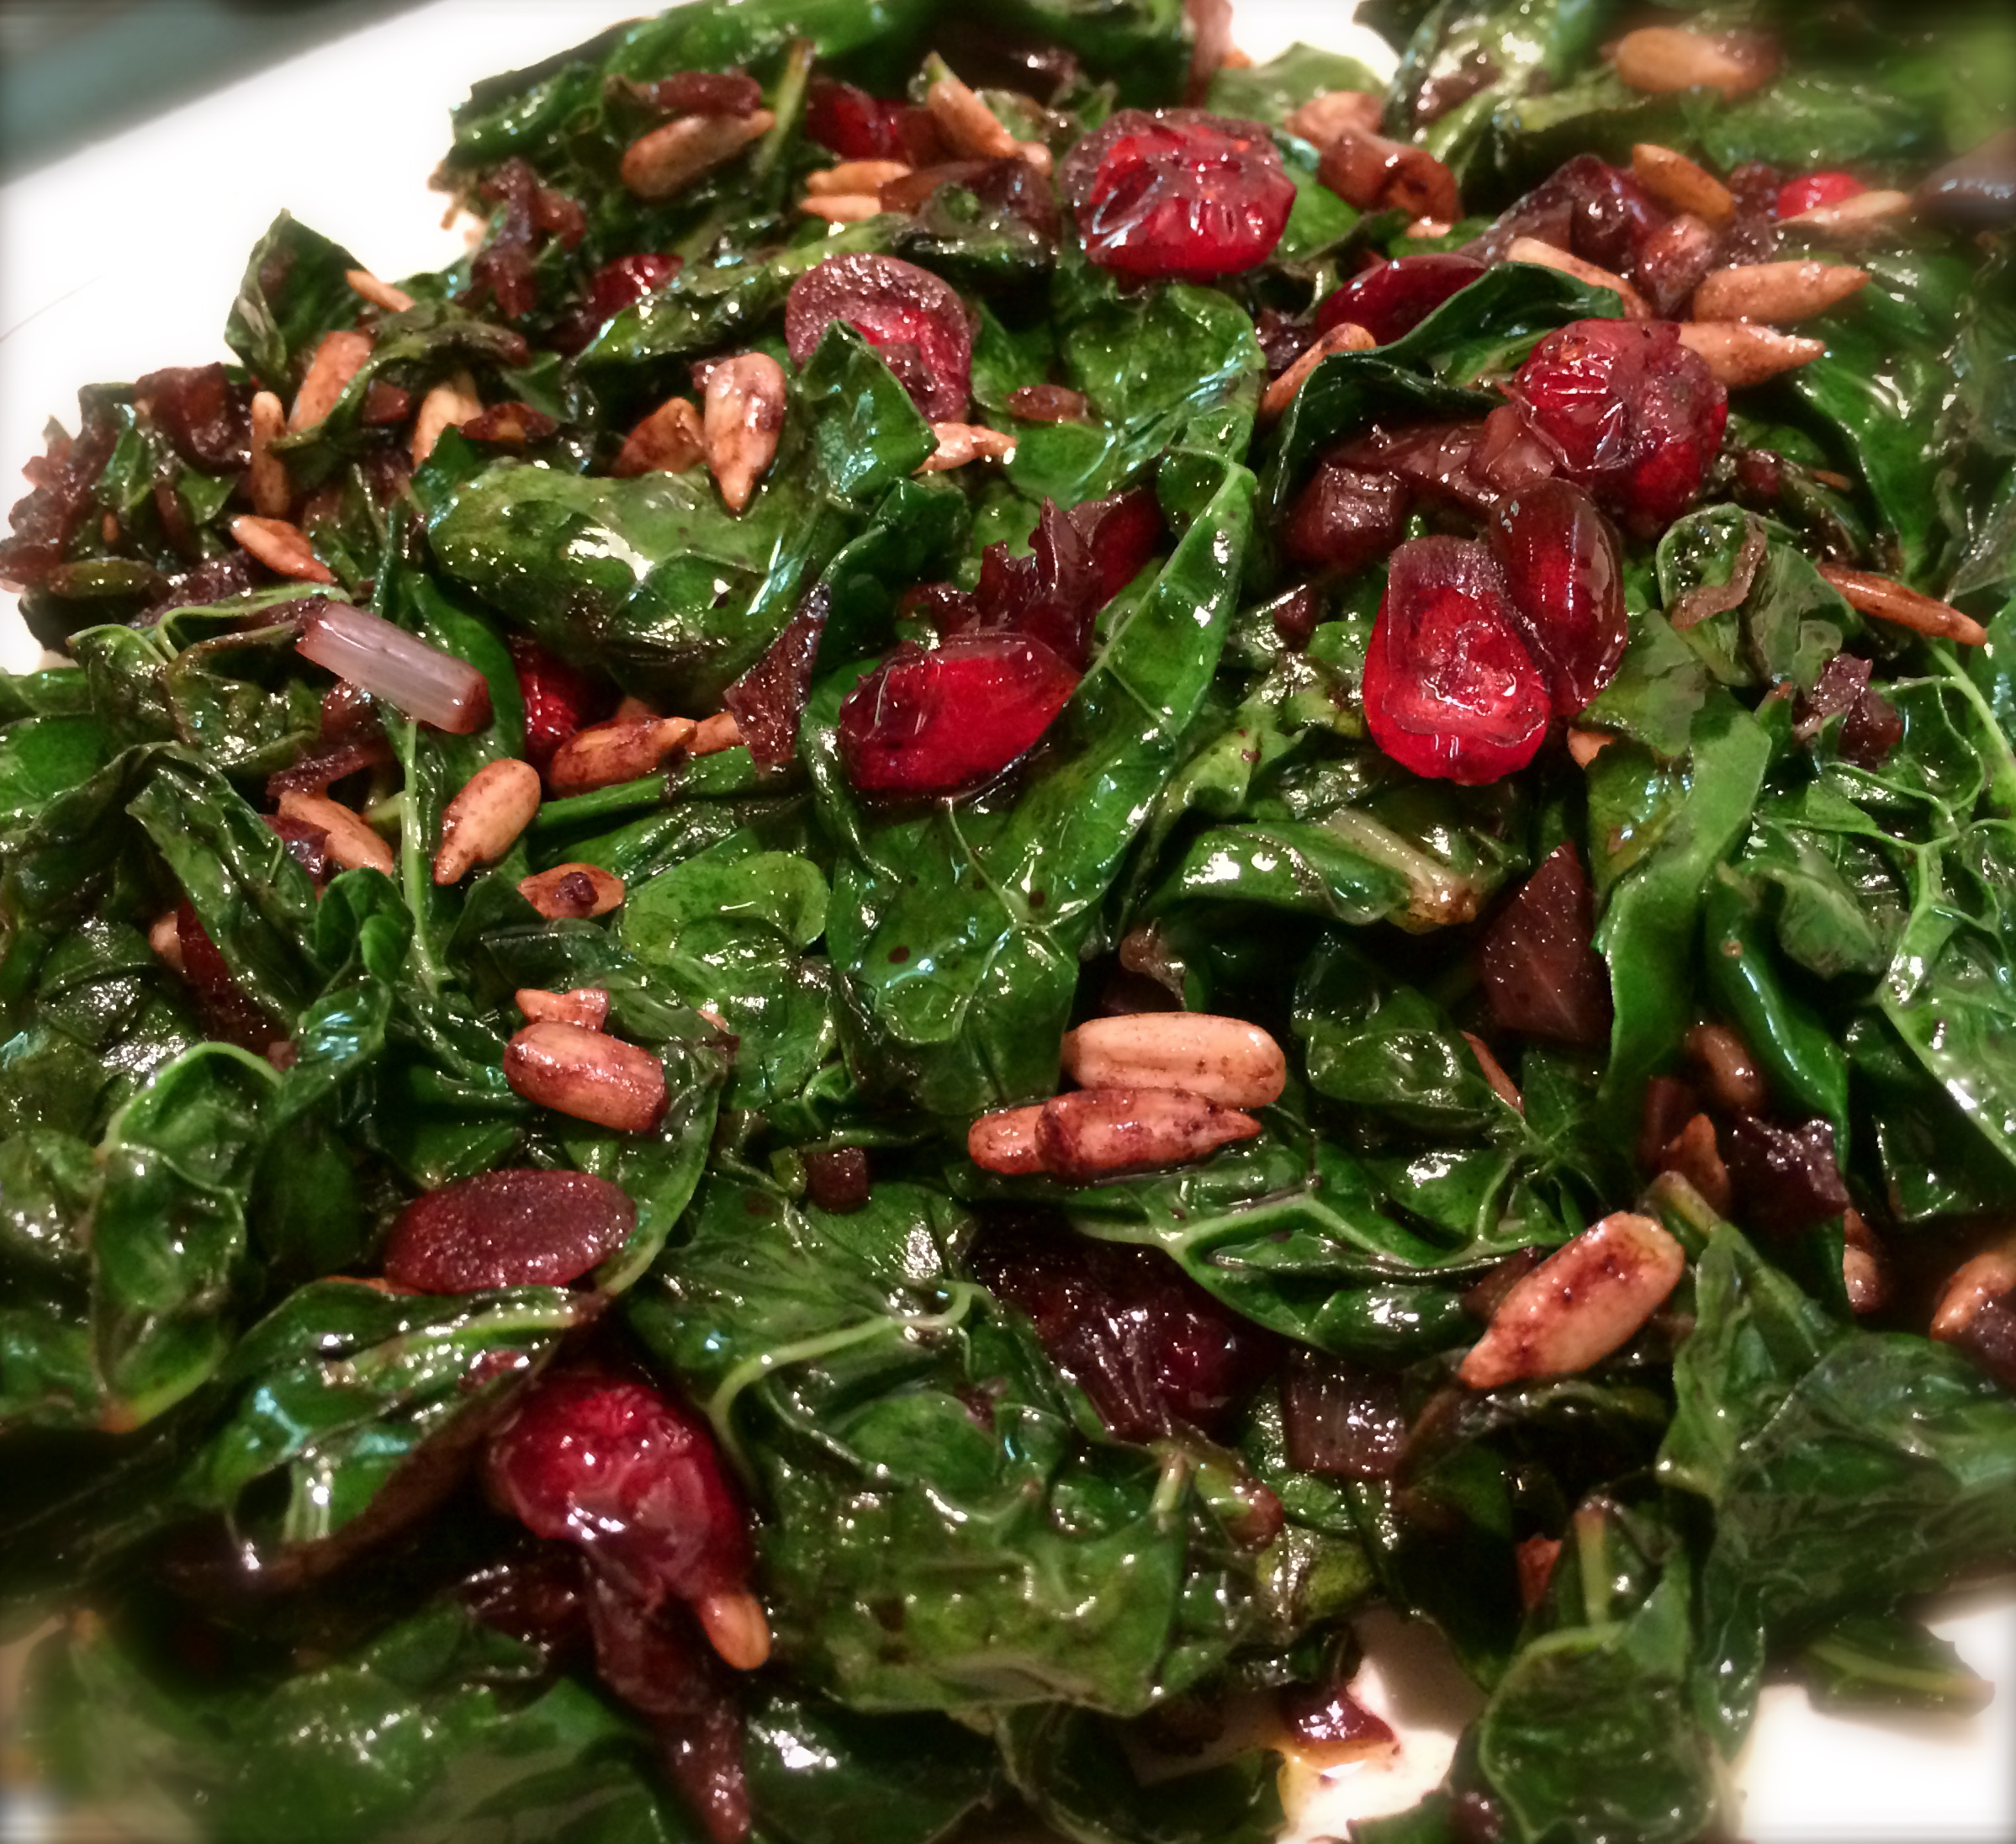 Slim Man Cooks Italian (Lacinato) Kale with Shallots, Port and Cranberries